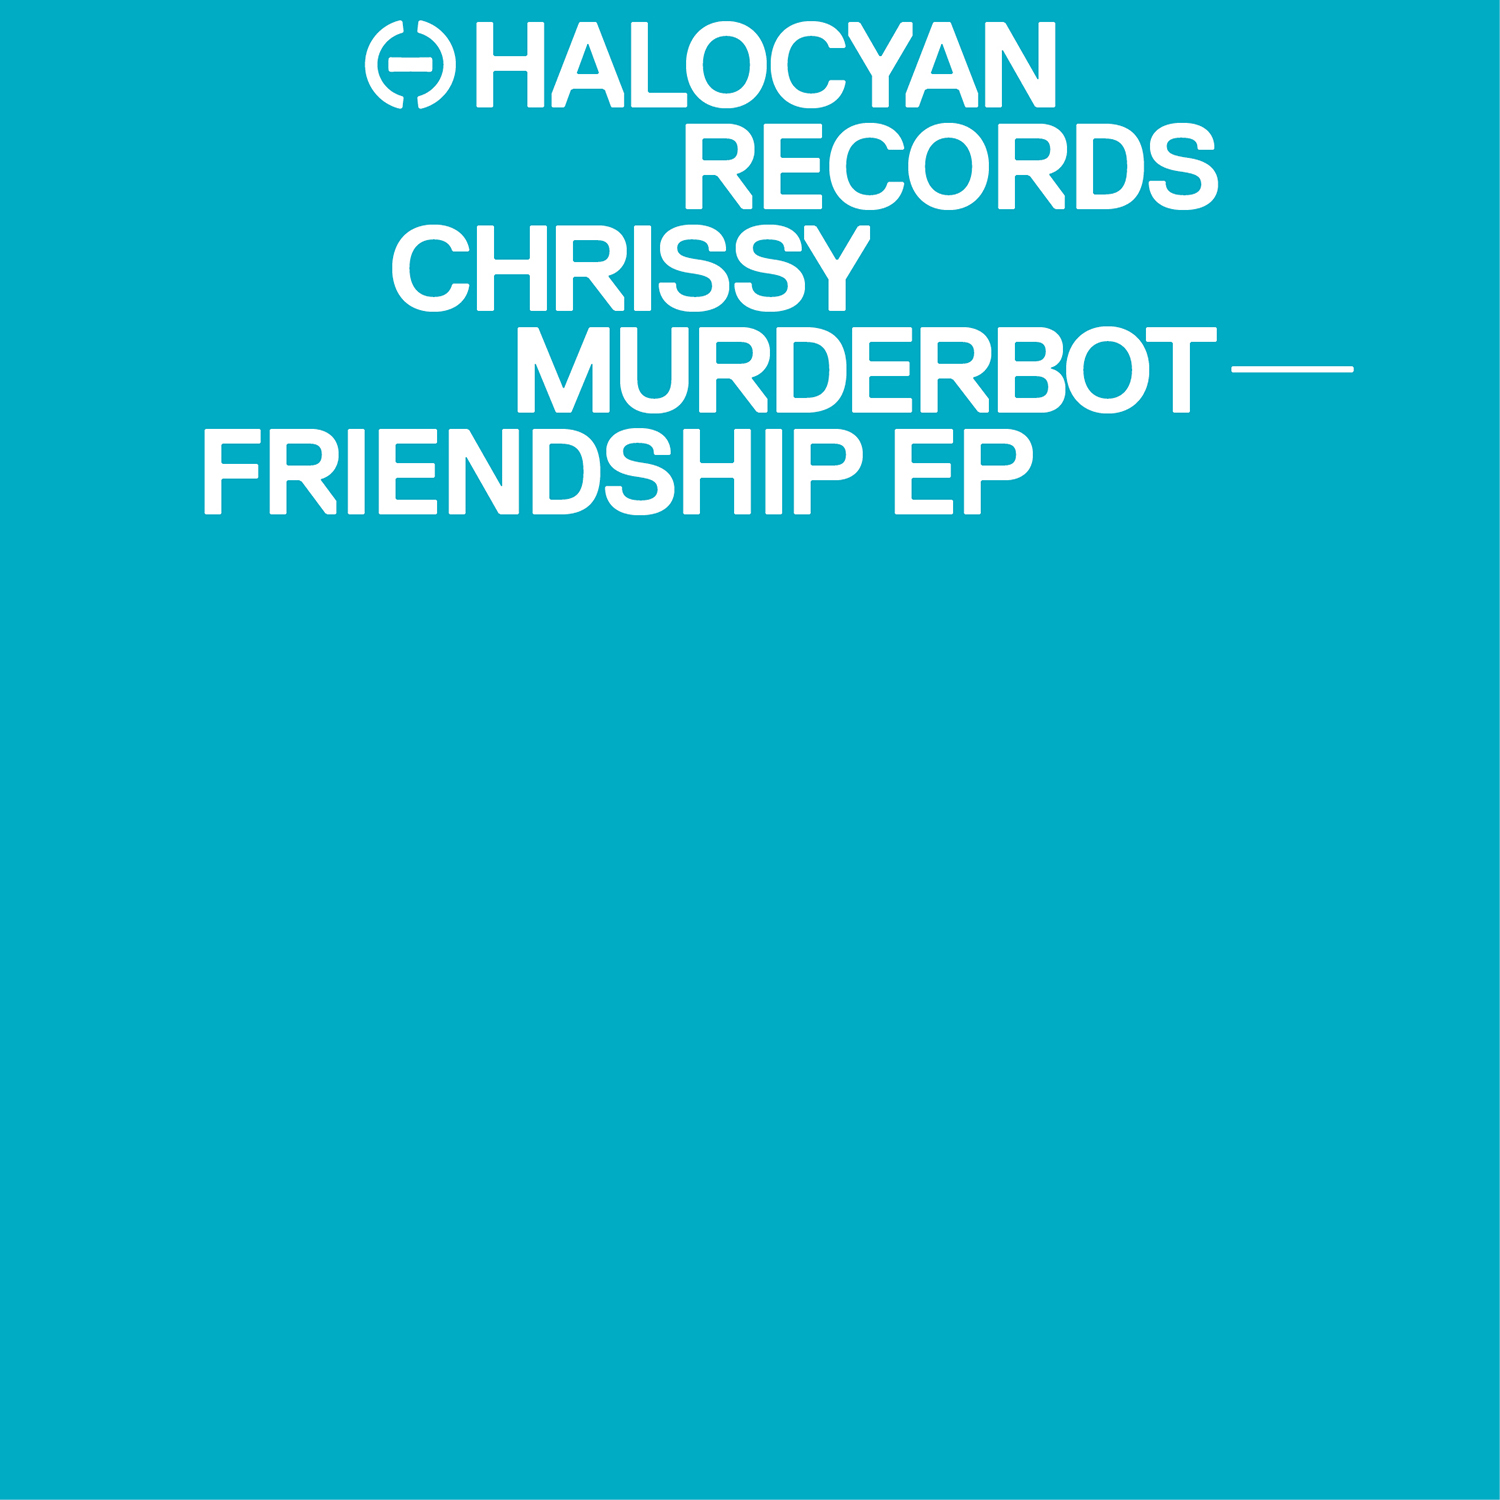 Chrissy Murderbot - Friendship